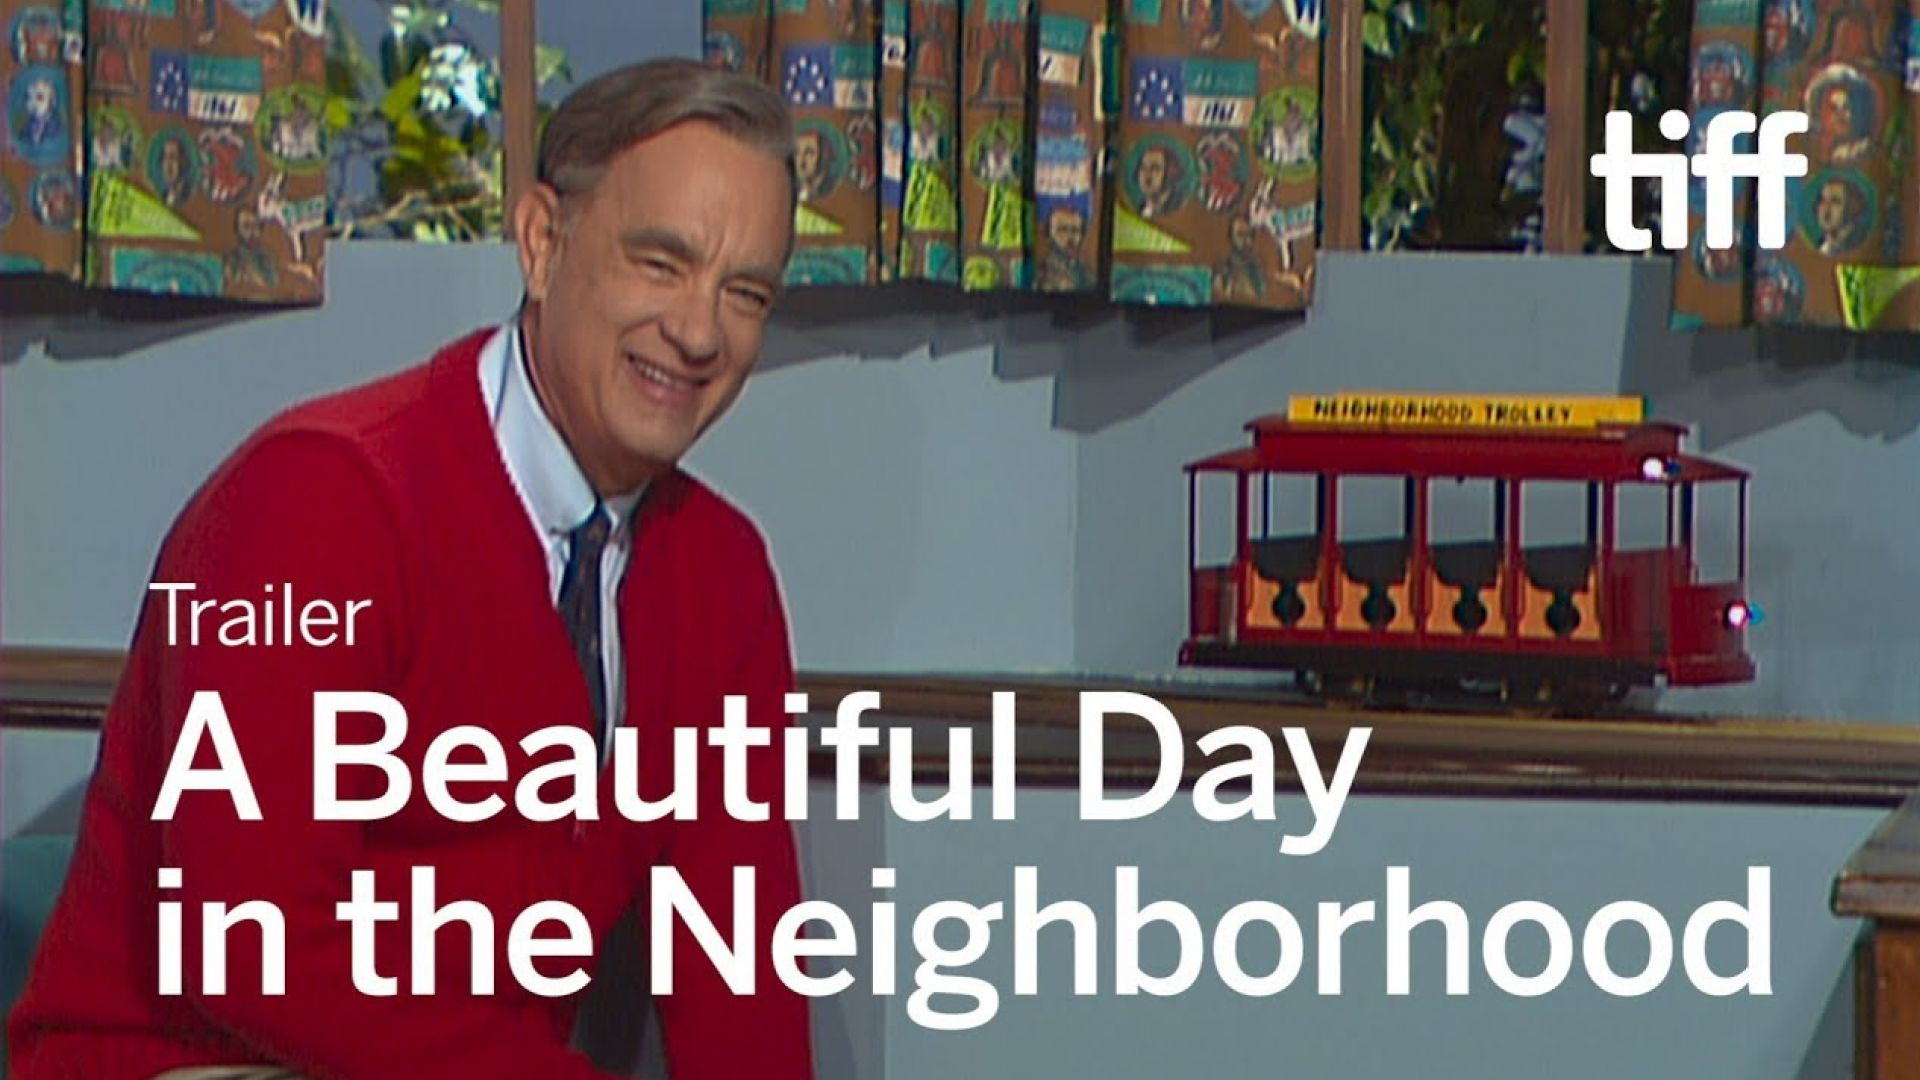 'A Beautiful Day in the Neighborhood' trailer